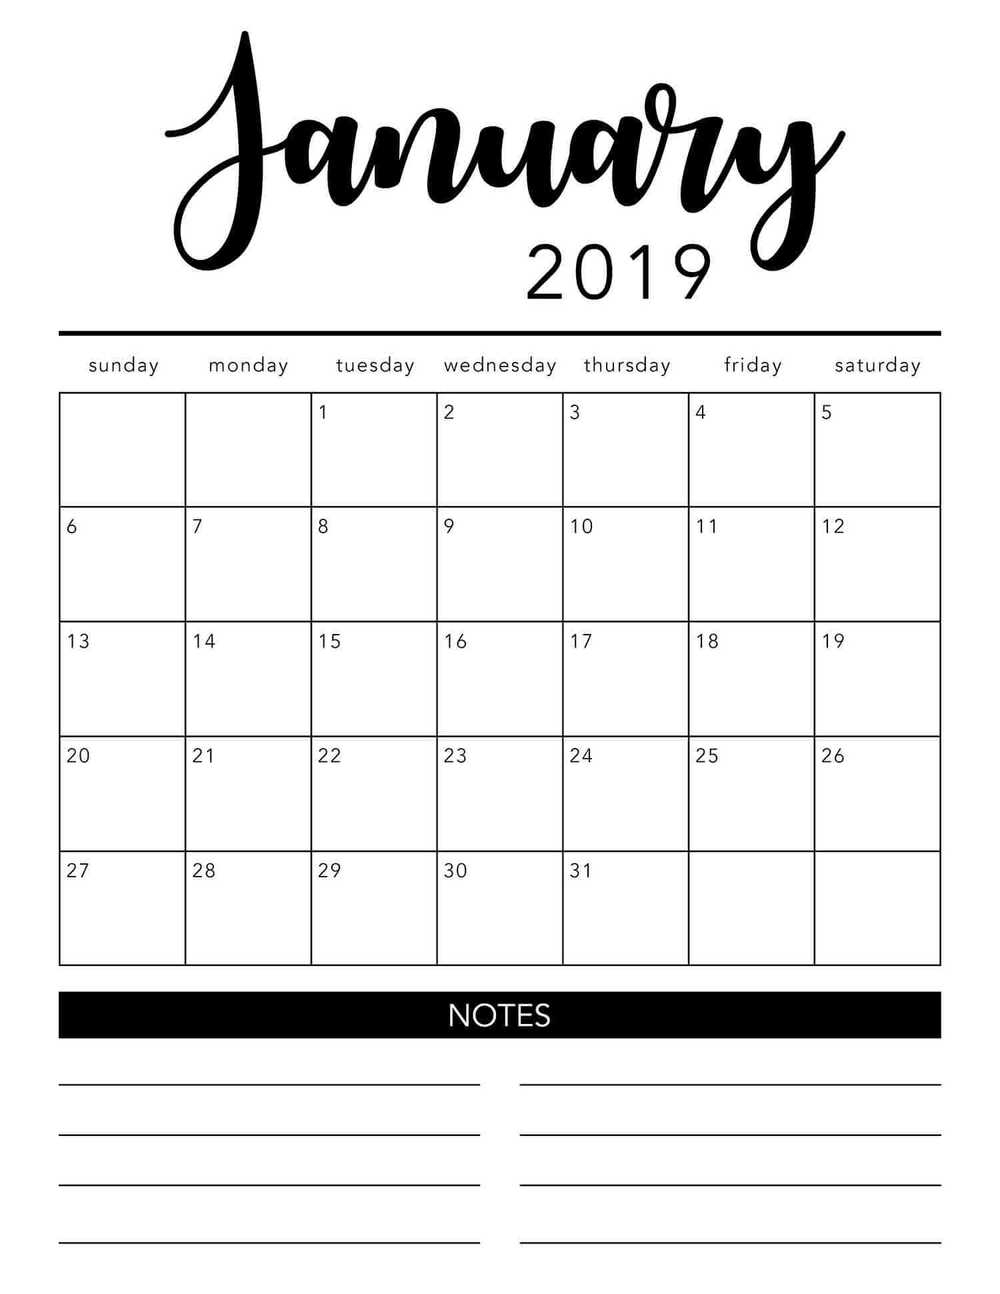 Free 2019 Printable Calendar Template (2 Colors!) - I Heart Naptime intended for Blank Calendar To Print By Month